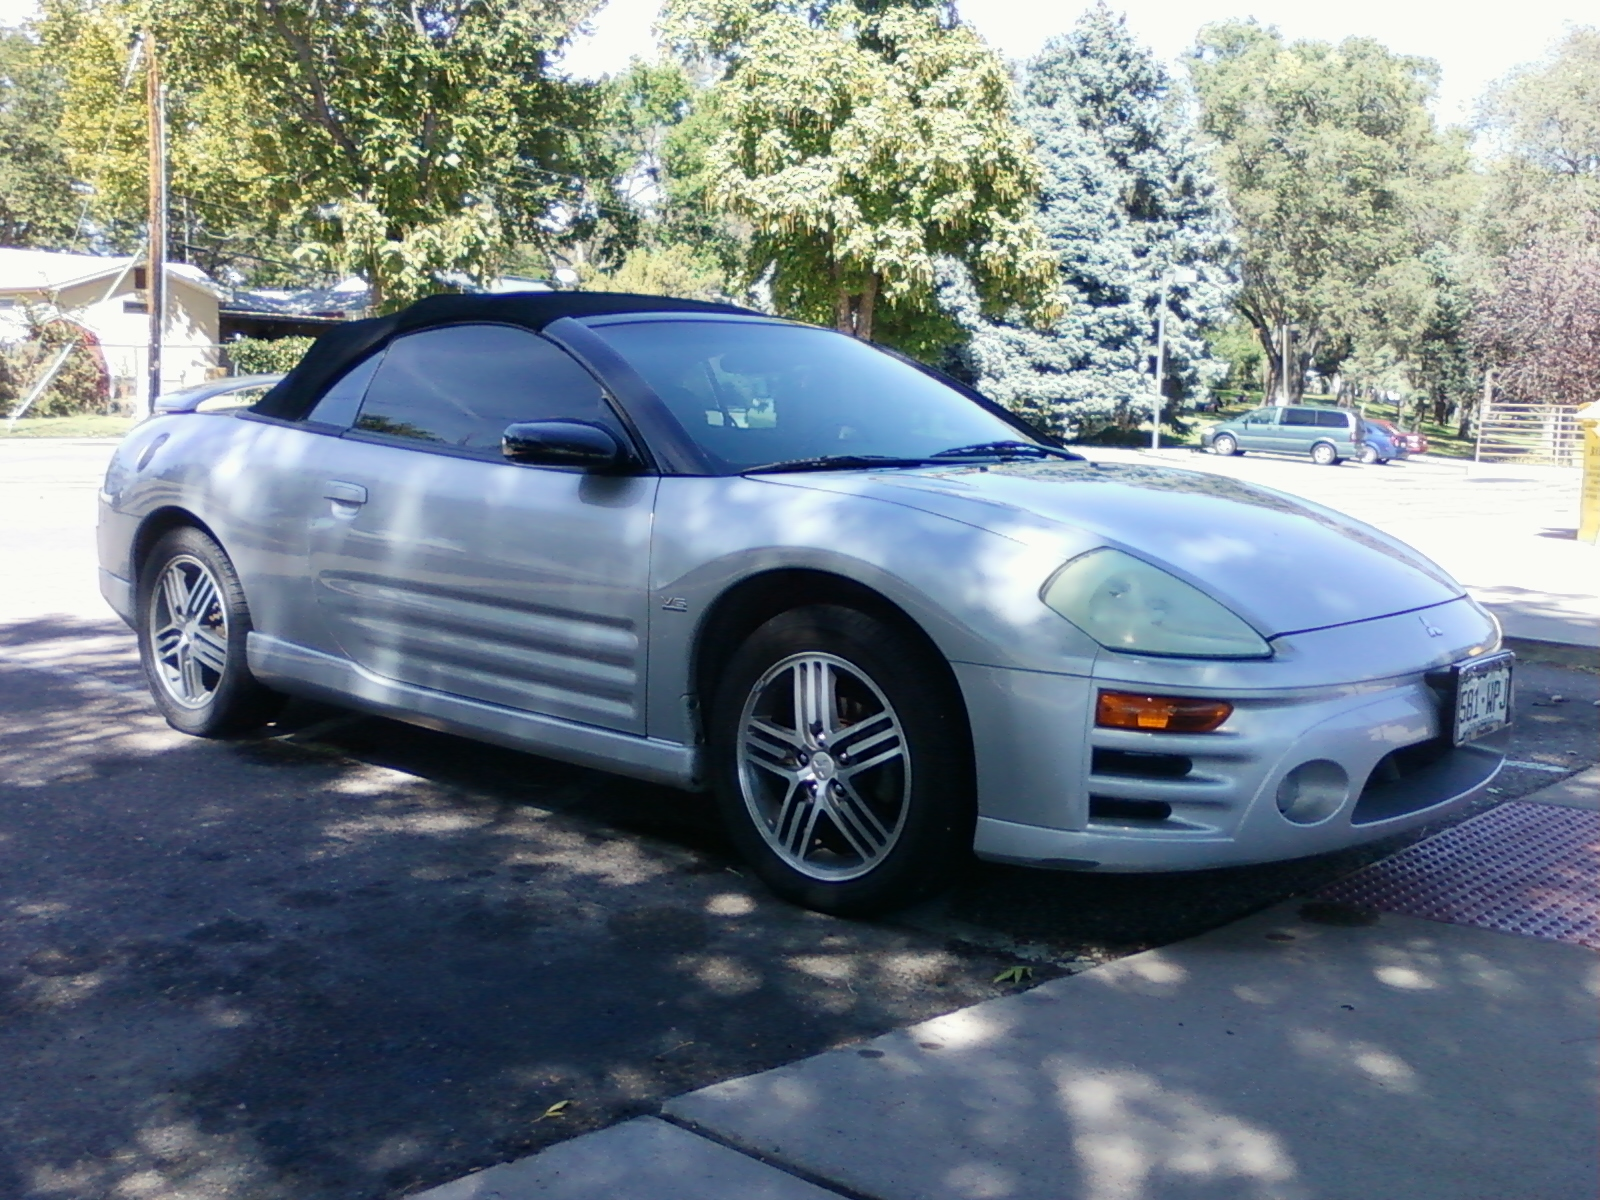 2005 Mitsubishi Eclipse Spyder - Pictures - CarGurus